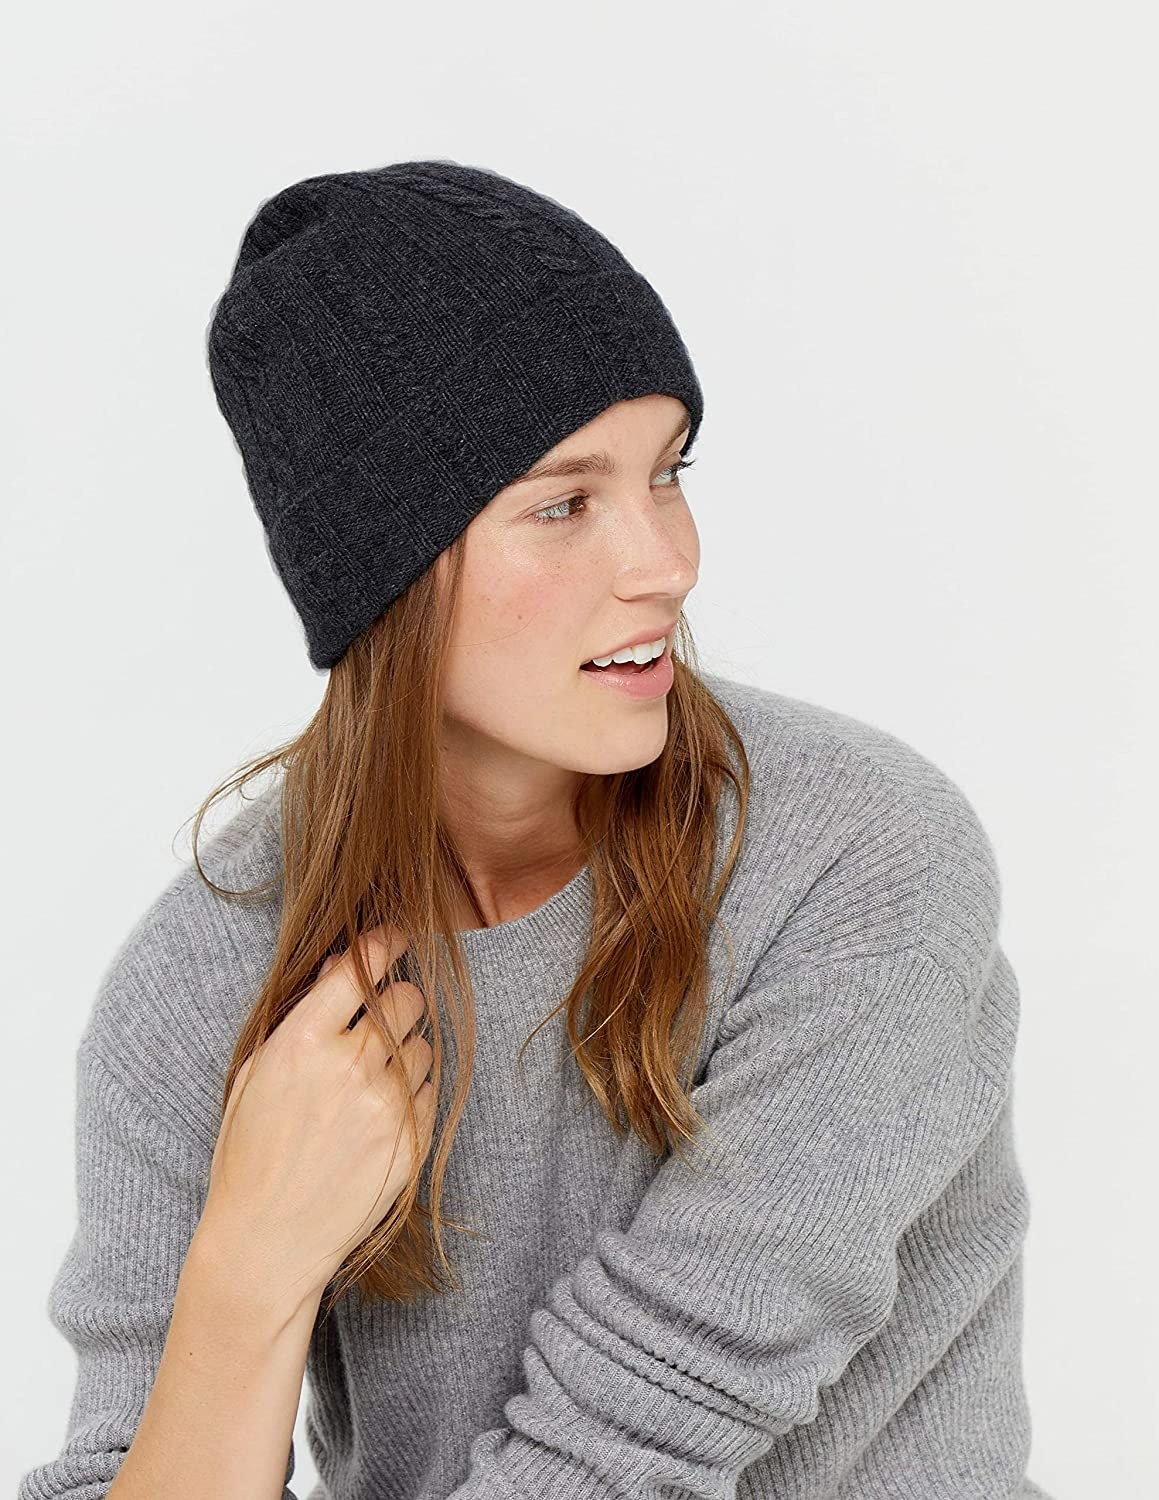 Model in the black beanie with a fold-over edge